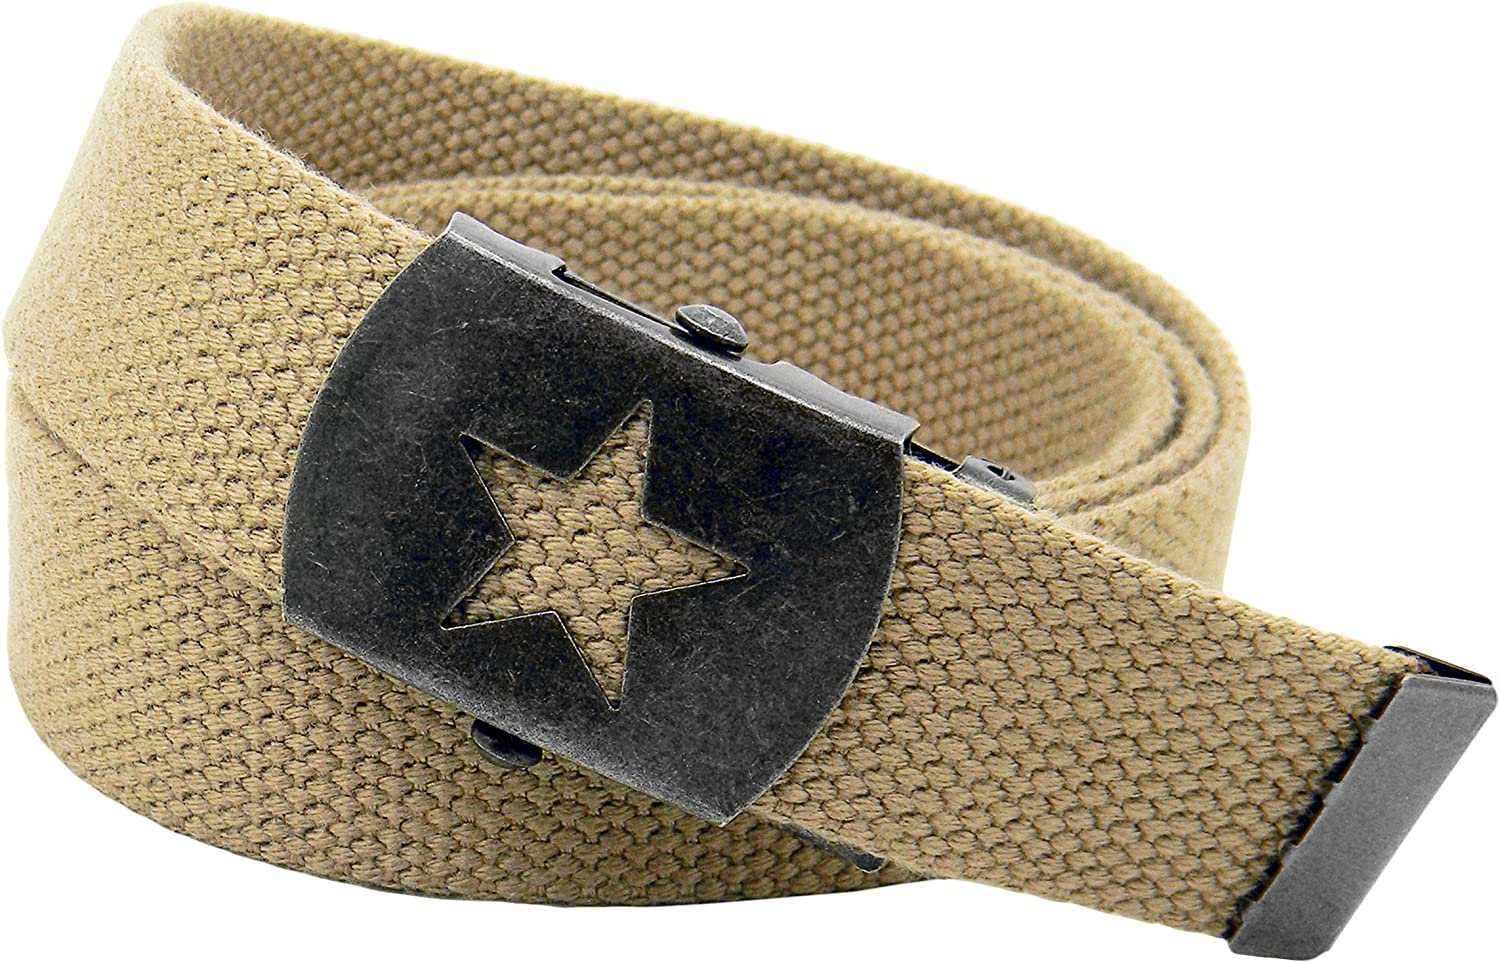 Boys Uniform Distressed Silver Star Slider Military Belt Buckle with Canvas Belt